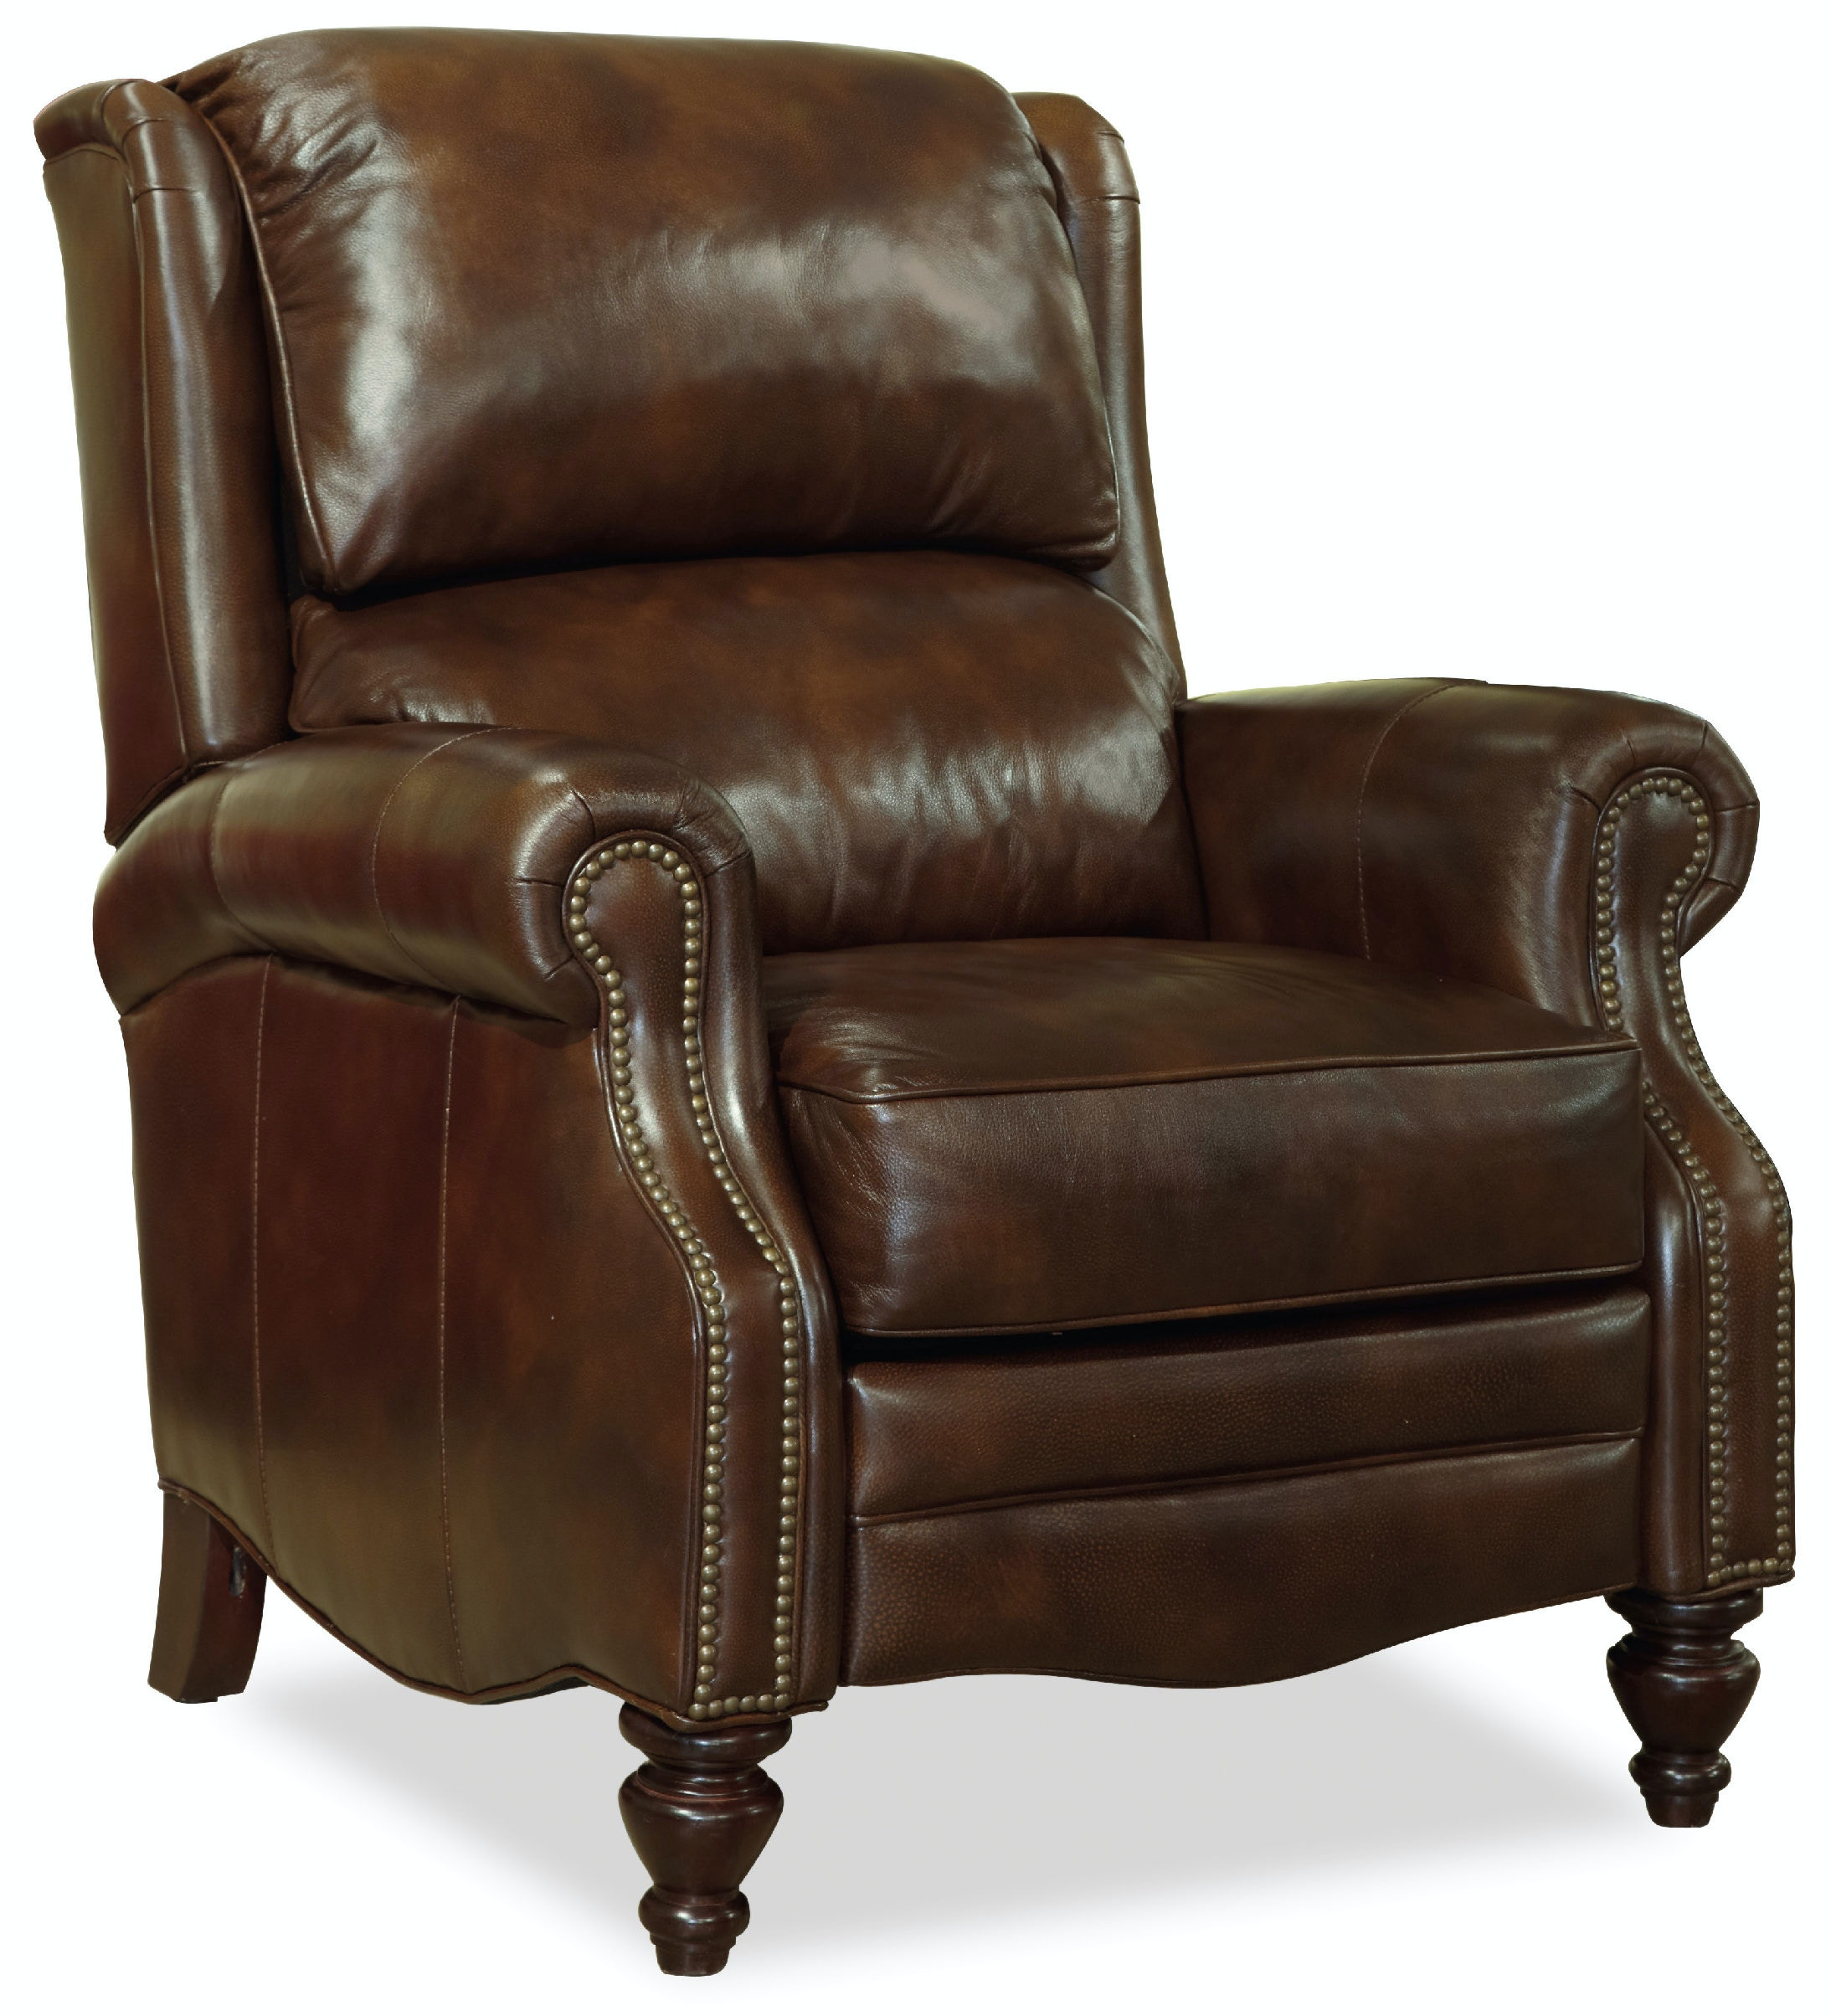 Hooker Furniture Clark Recliner RC168-089  sc 1 st  Issis u0026 Sons & Hooker Furniture Living Room Clark Recliner RC168-089 - Issis ... islam-shia.org